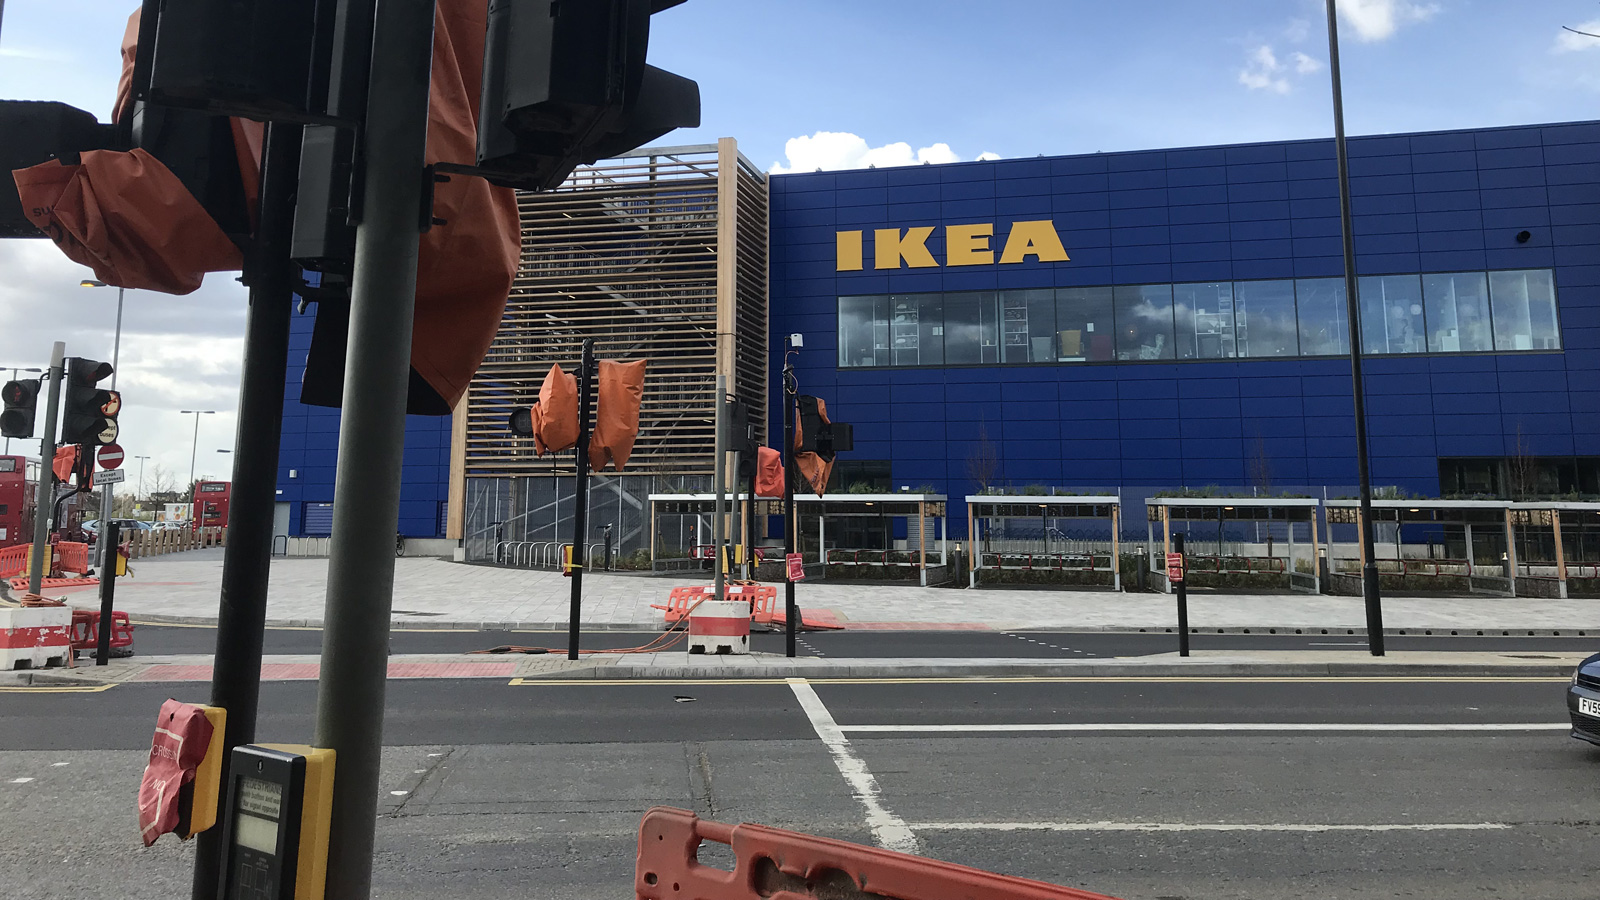 Greenwich Ikea car park plan 'made traffic worse', TfL says